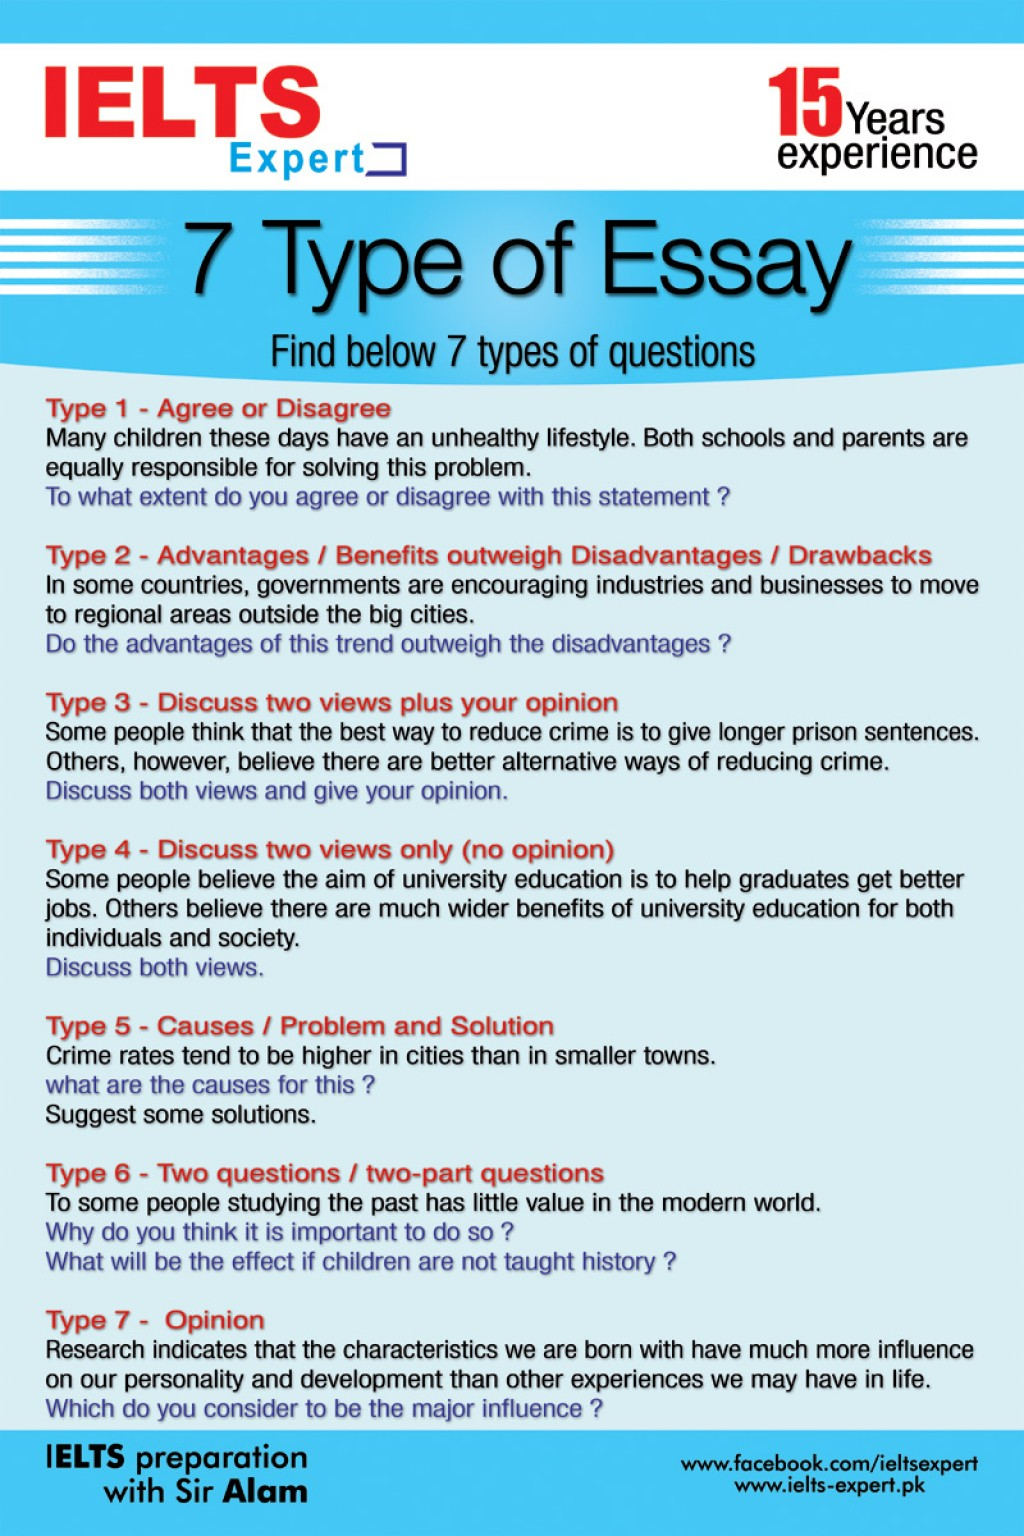 005 Essay Example Type An Online For Free Of Stirring Where Can I Large